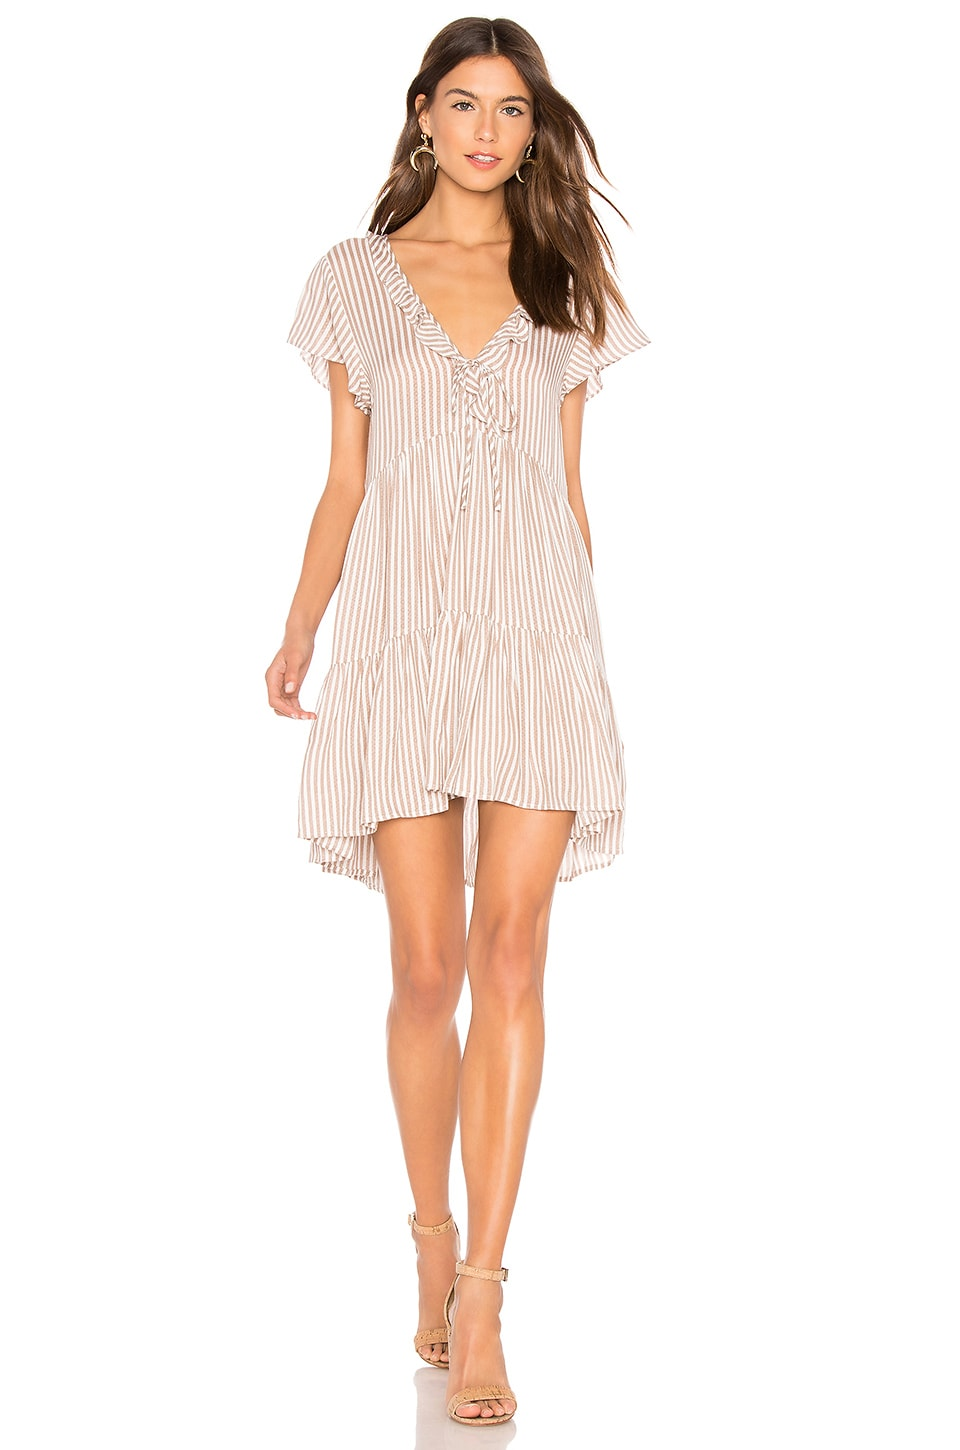 AUGUSTE Matilda Babydoll Dress in Almond Stripe